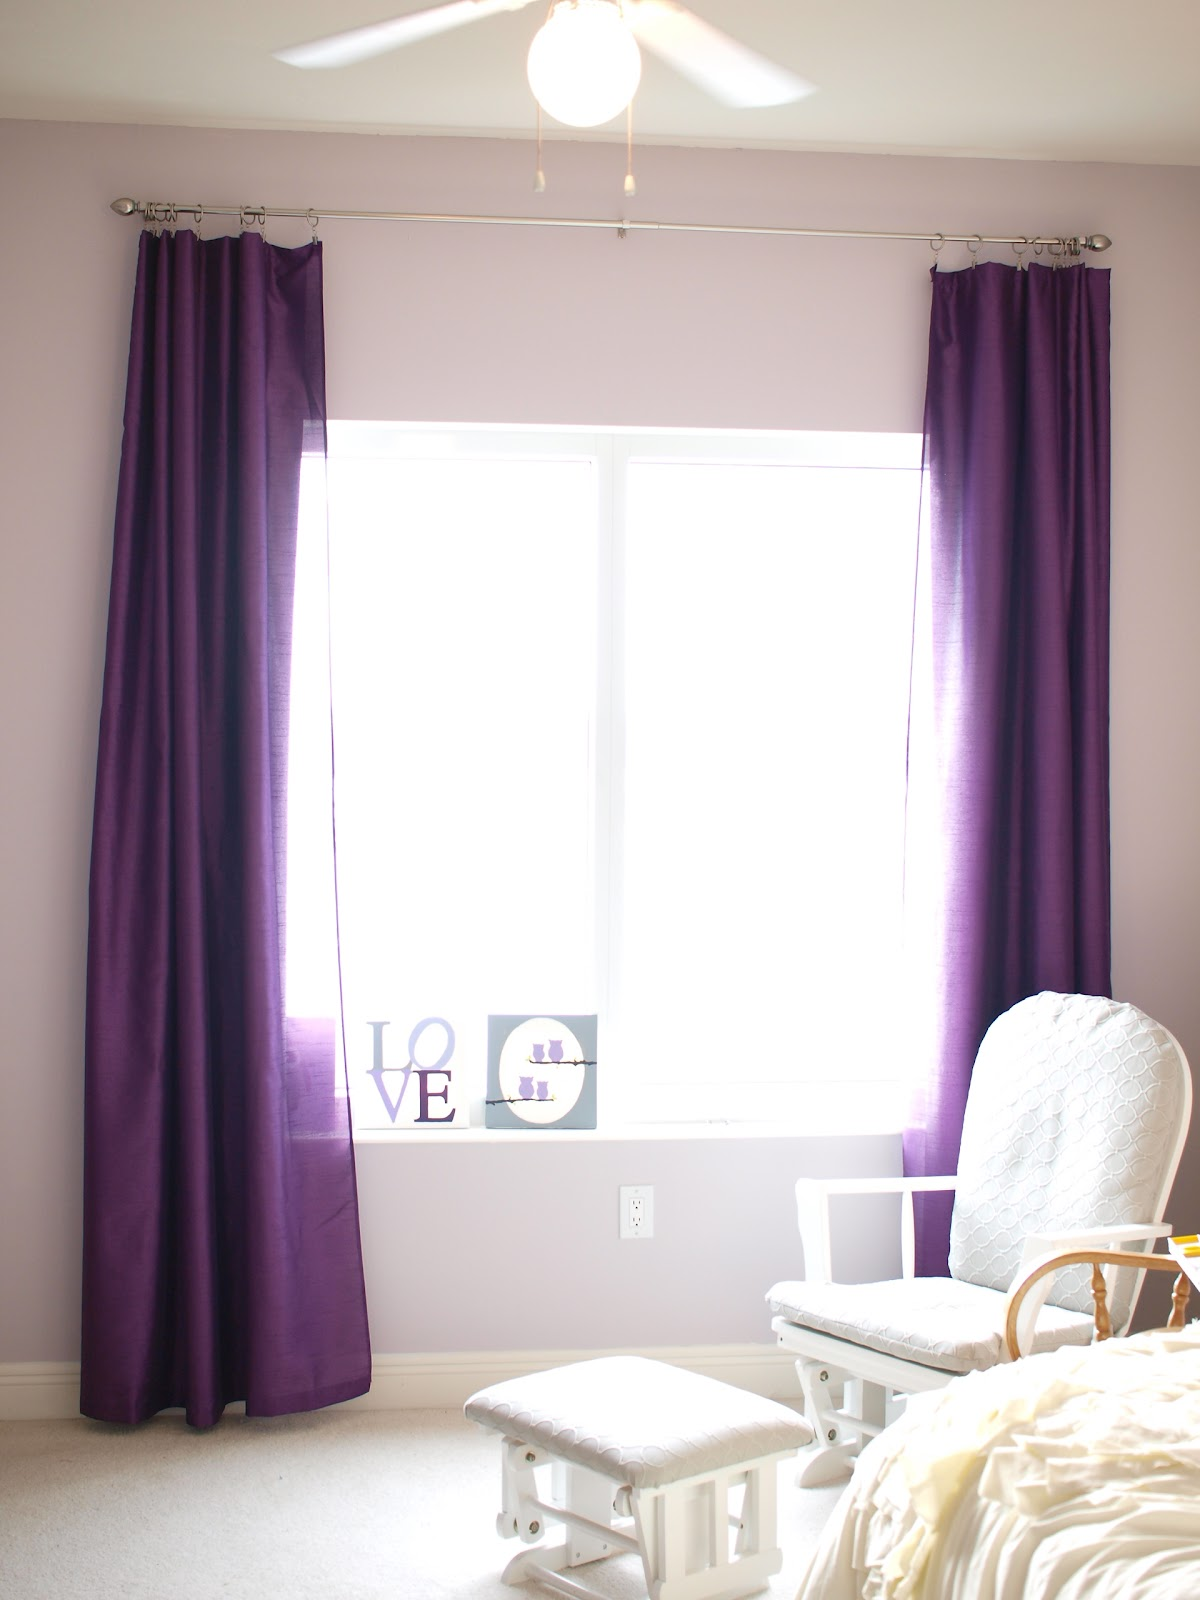 Baby Bedroom Curtains Blackout: Our Own Kind Of Paradise: ::Baby G:: DIY Blackout Curtains